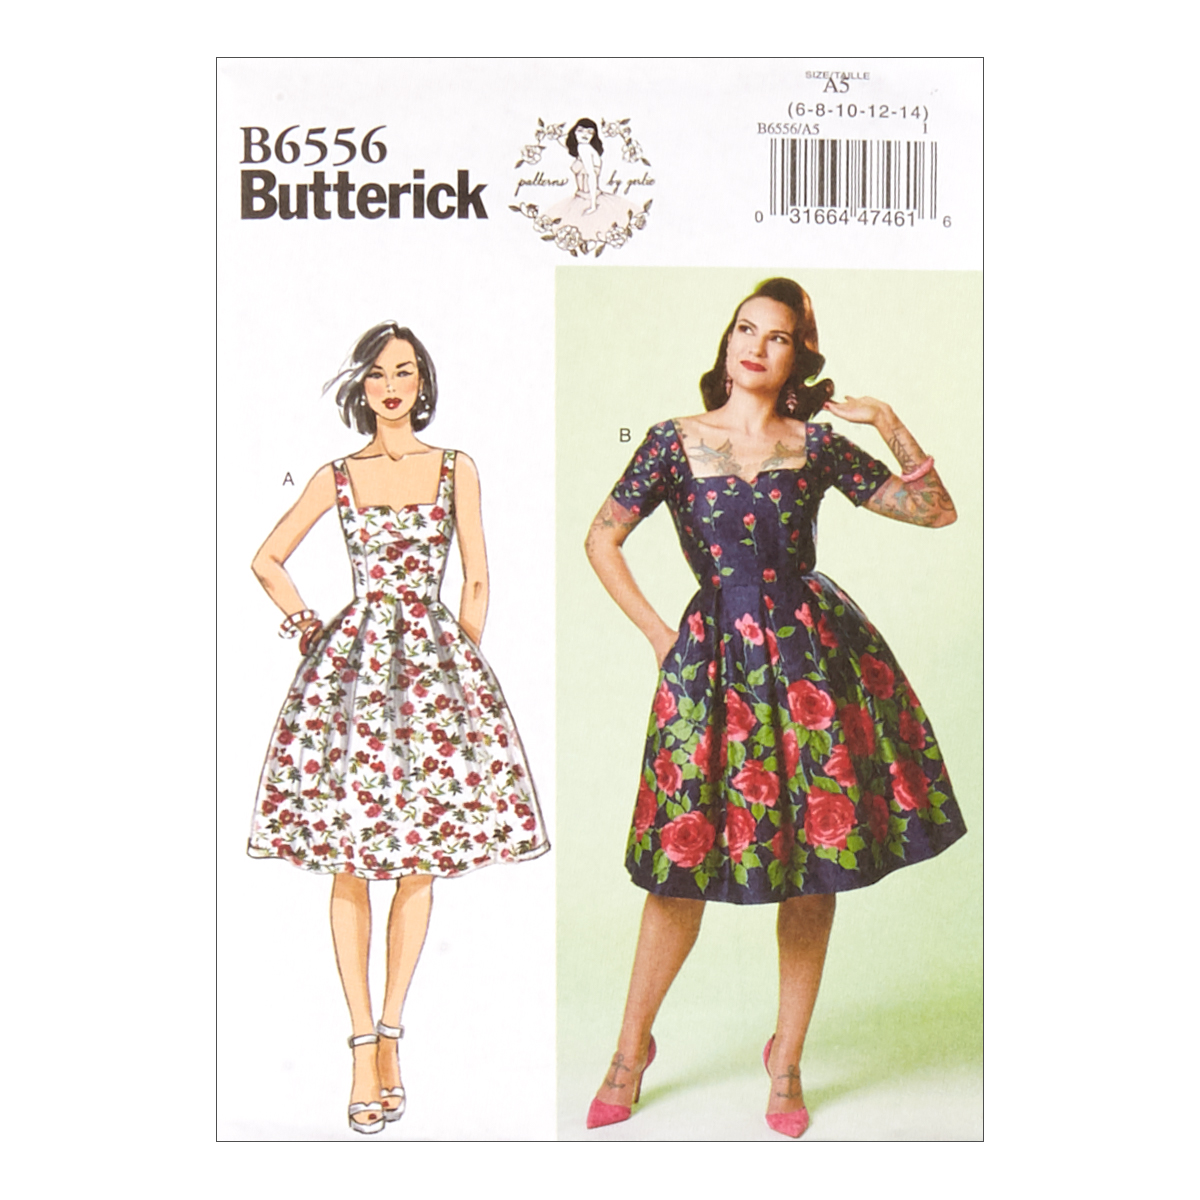 1950s Fabrics & Colors in Fashion Butterick B6556 Patterns by Gertie Misses Dress E5 Sizes 14-22 $11.97 AT vintagedancer.com